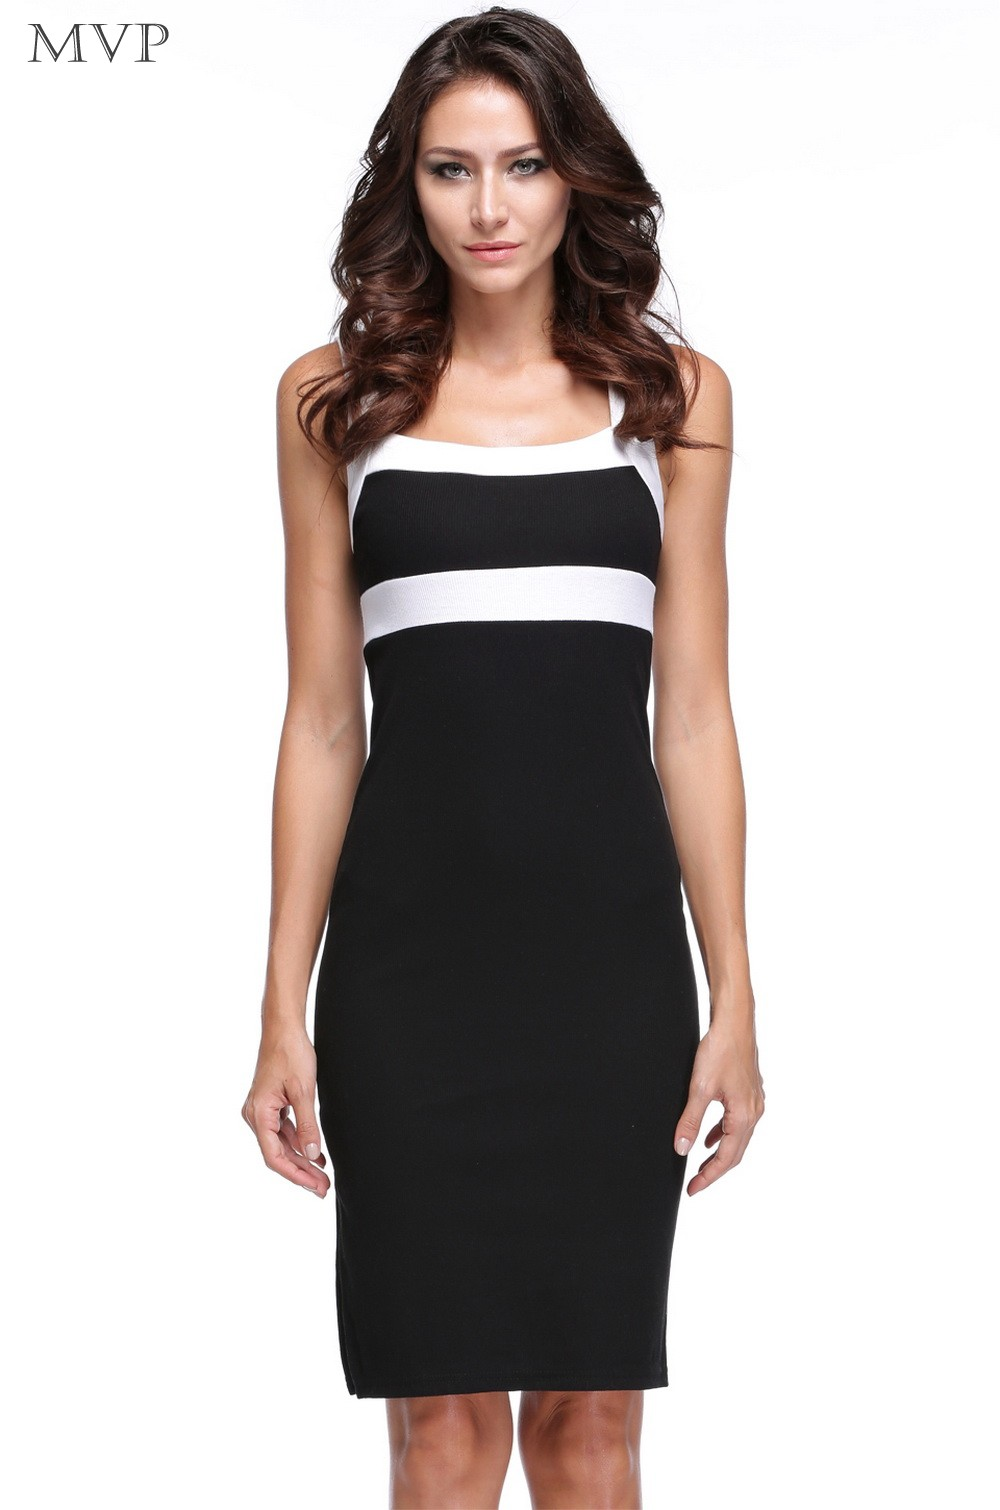 Promotion !Summer 2014 Women Sexy Dress Elegant Two Way to Wear Sleeveless Slim V-neck Pencil Dress to Party b7 SV008022(China (Mainland))